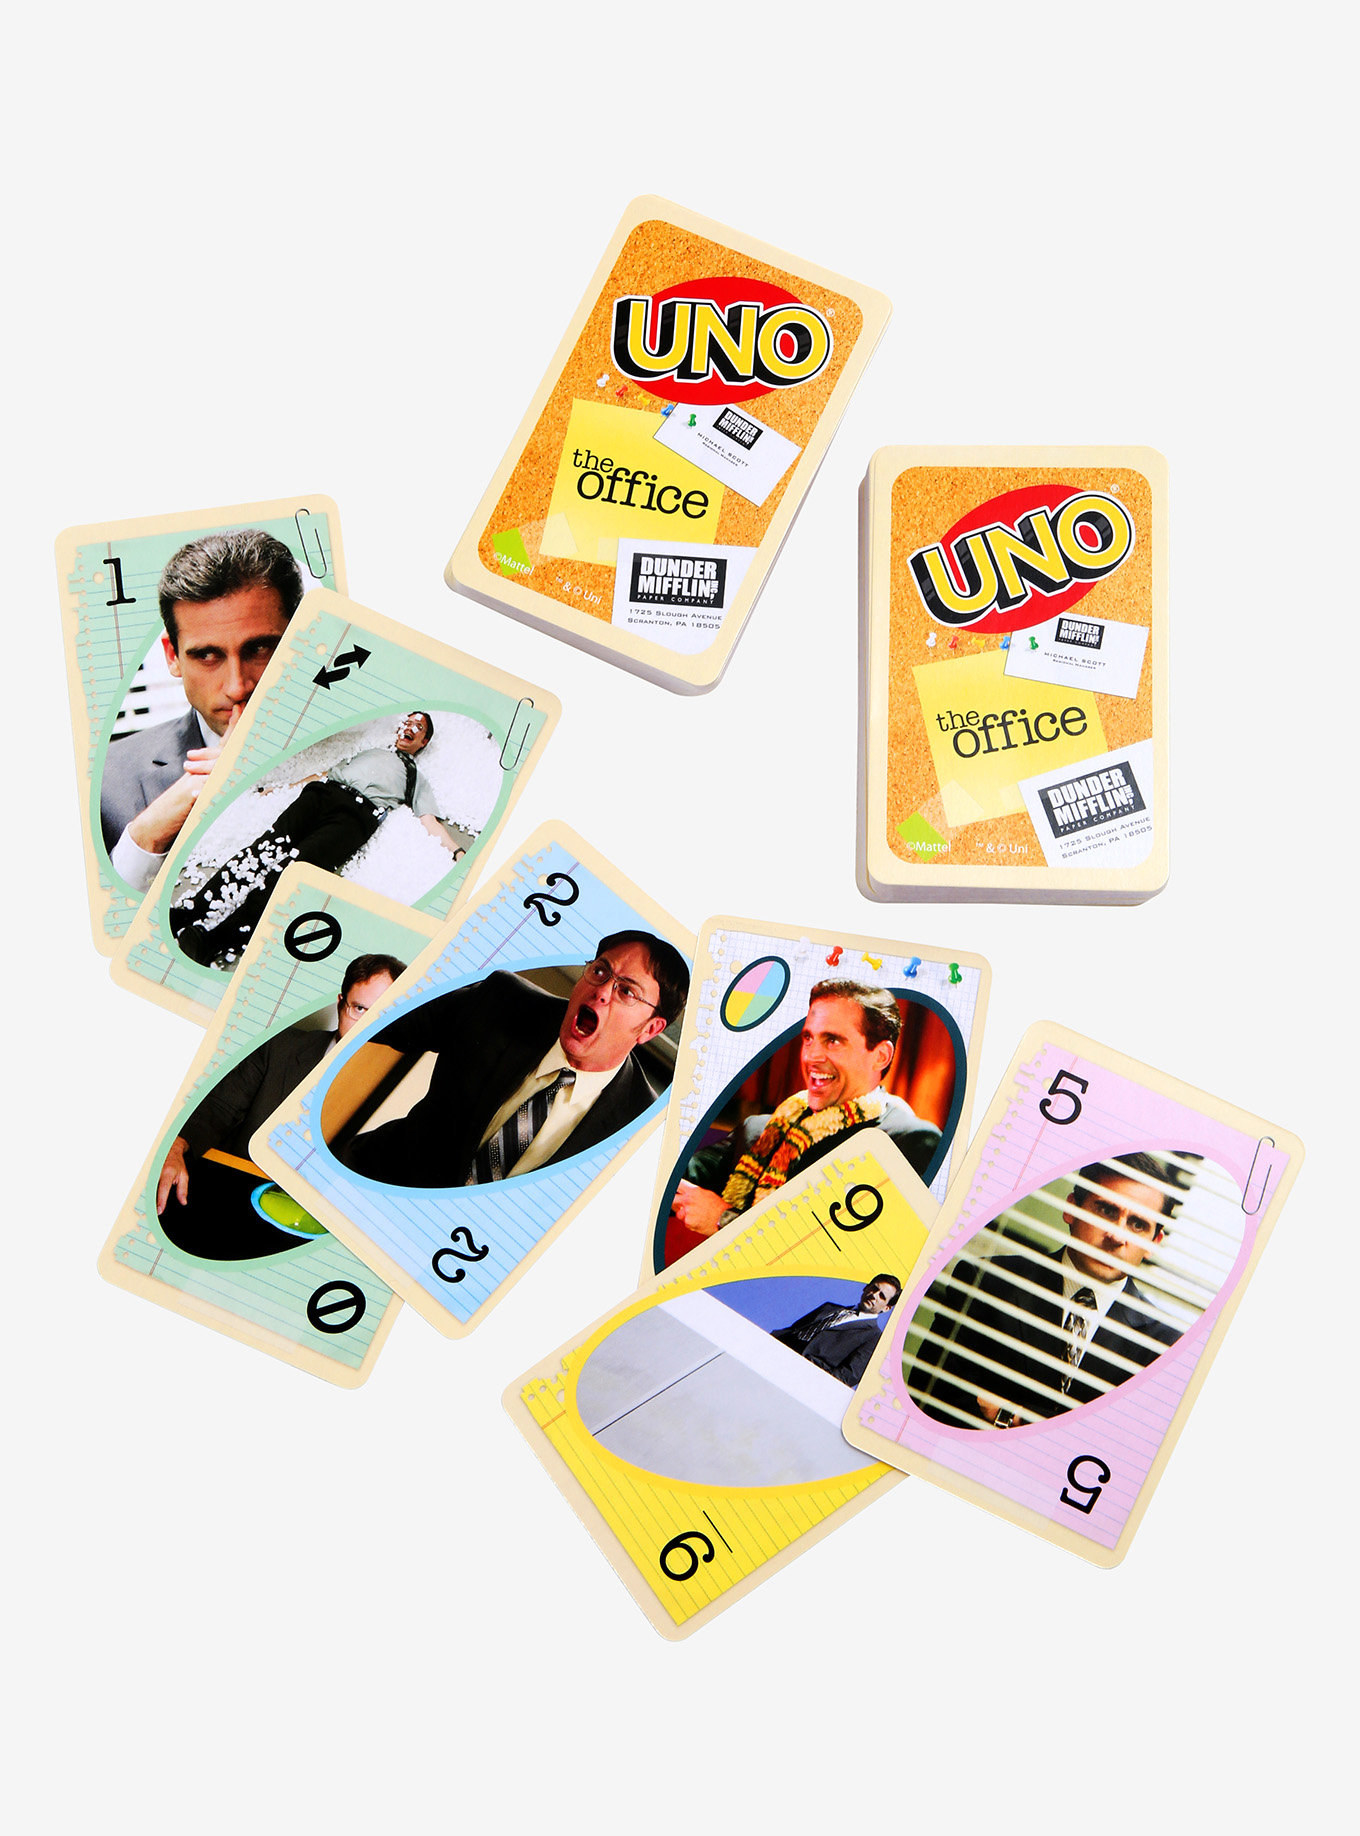 the uno cards with different characters of the office on them